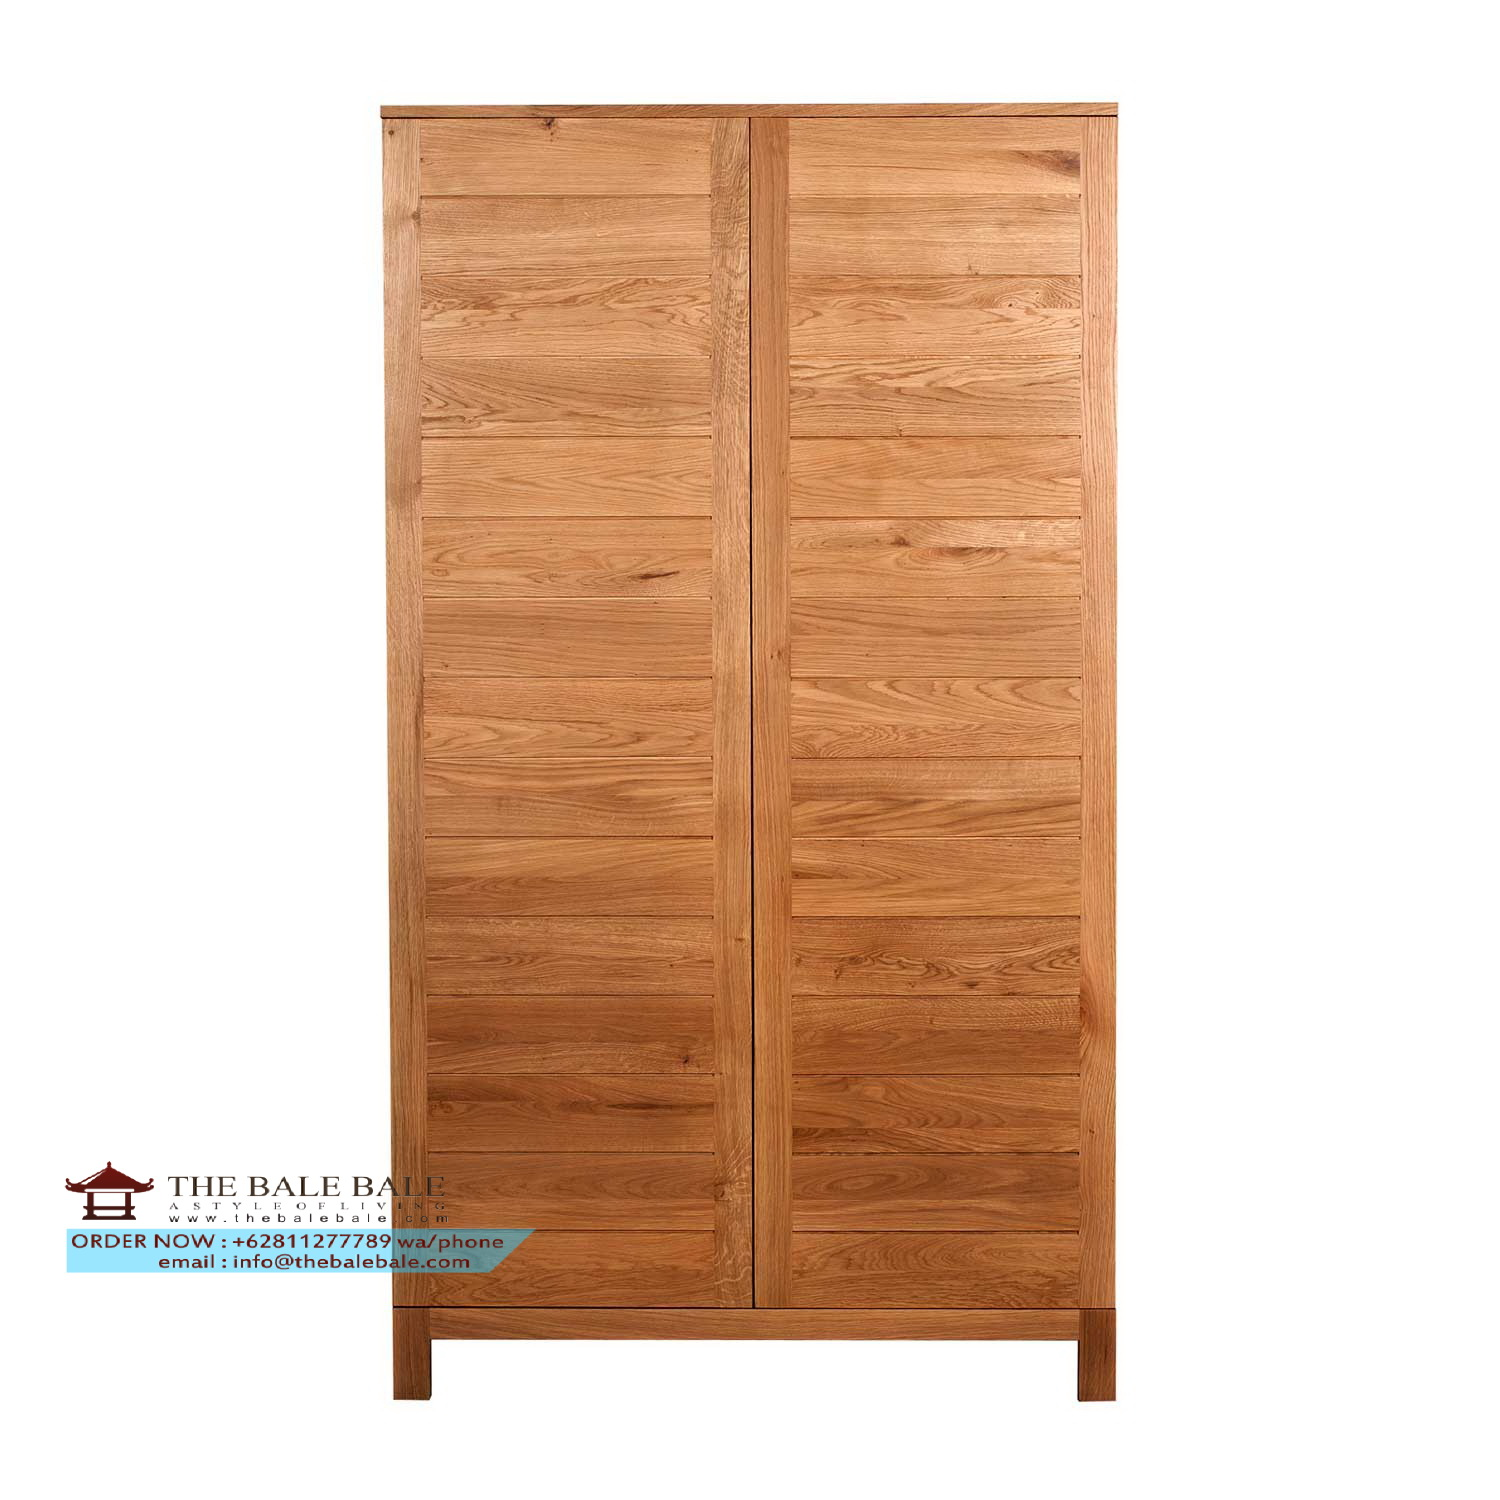 oak-azur-bedroom-wardrobe